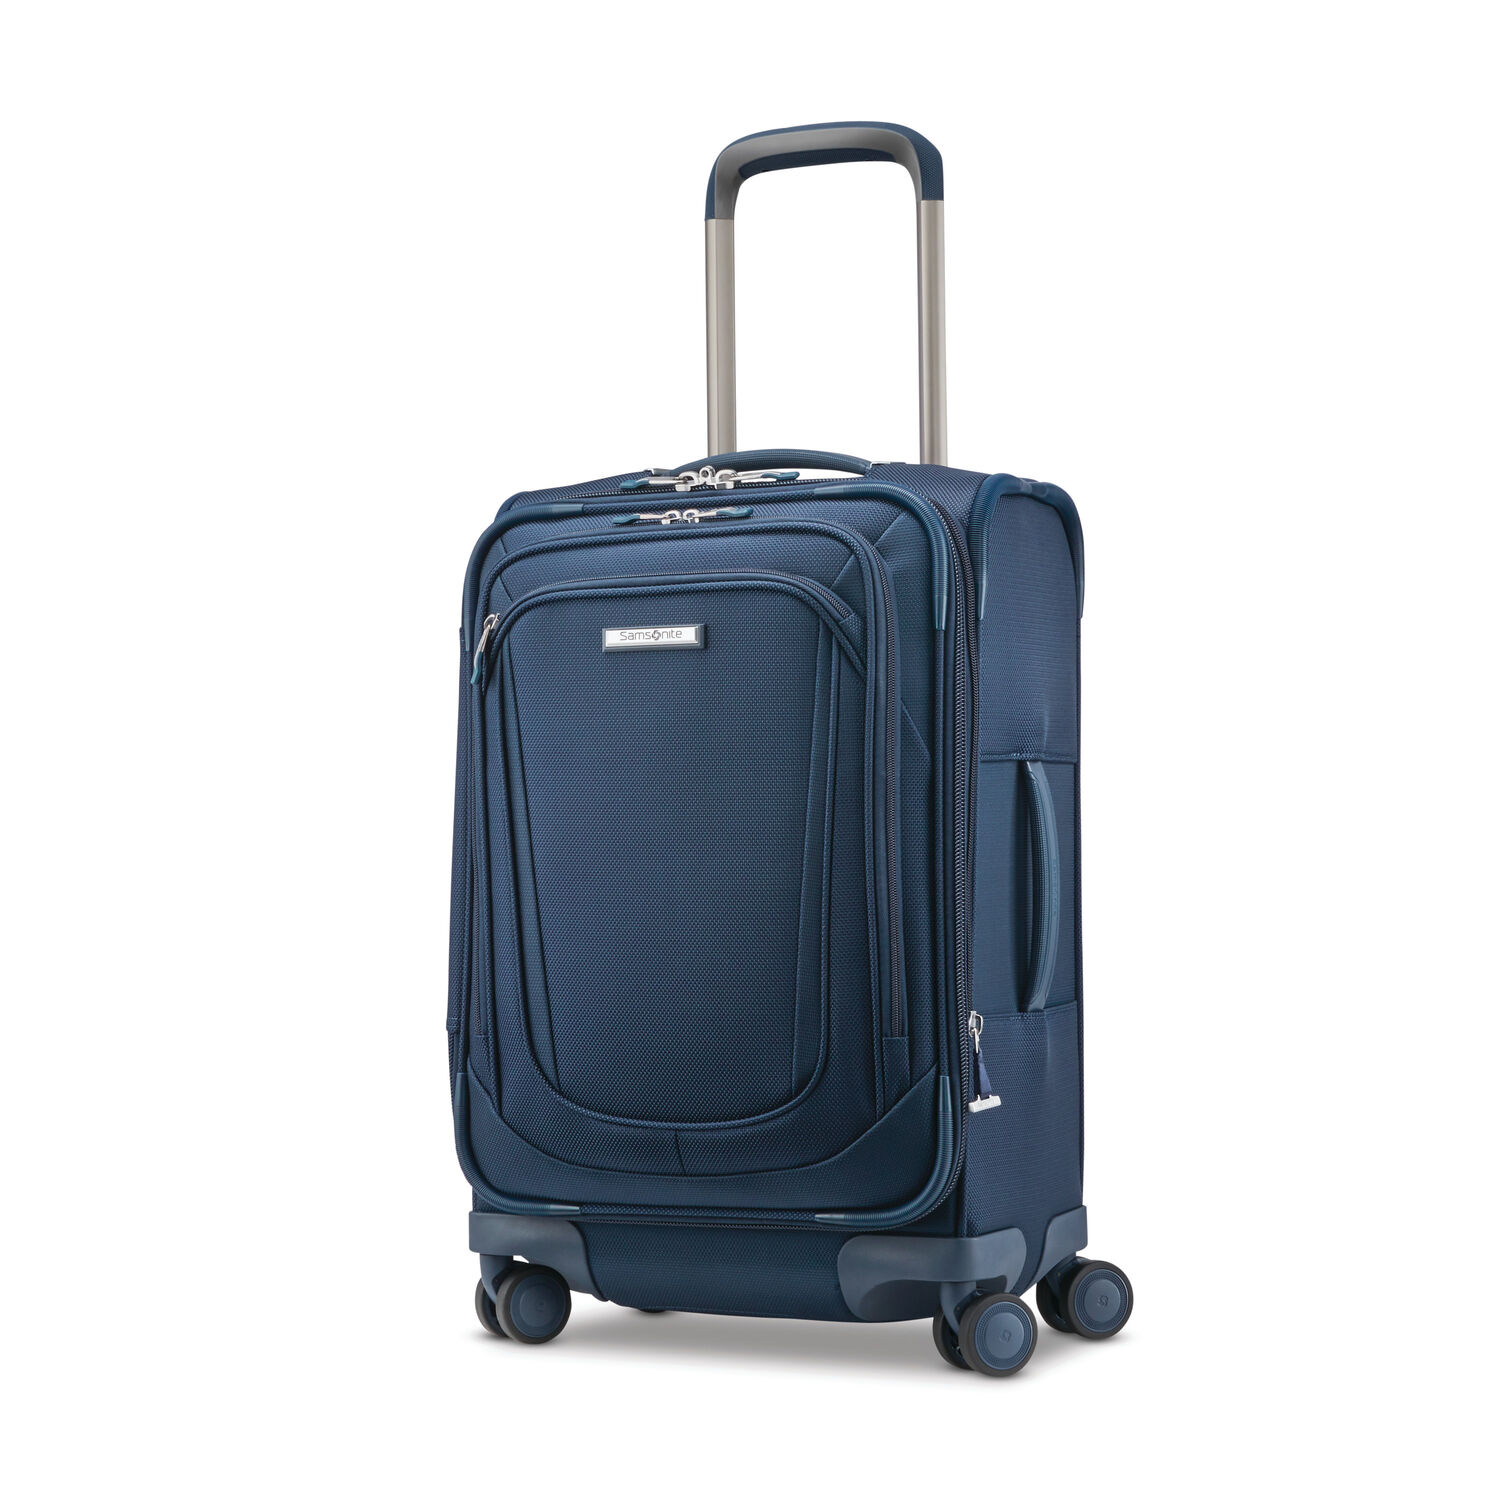 Samsonite Silhouette 16 Spinner Carry-On in the color Evening Teal.